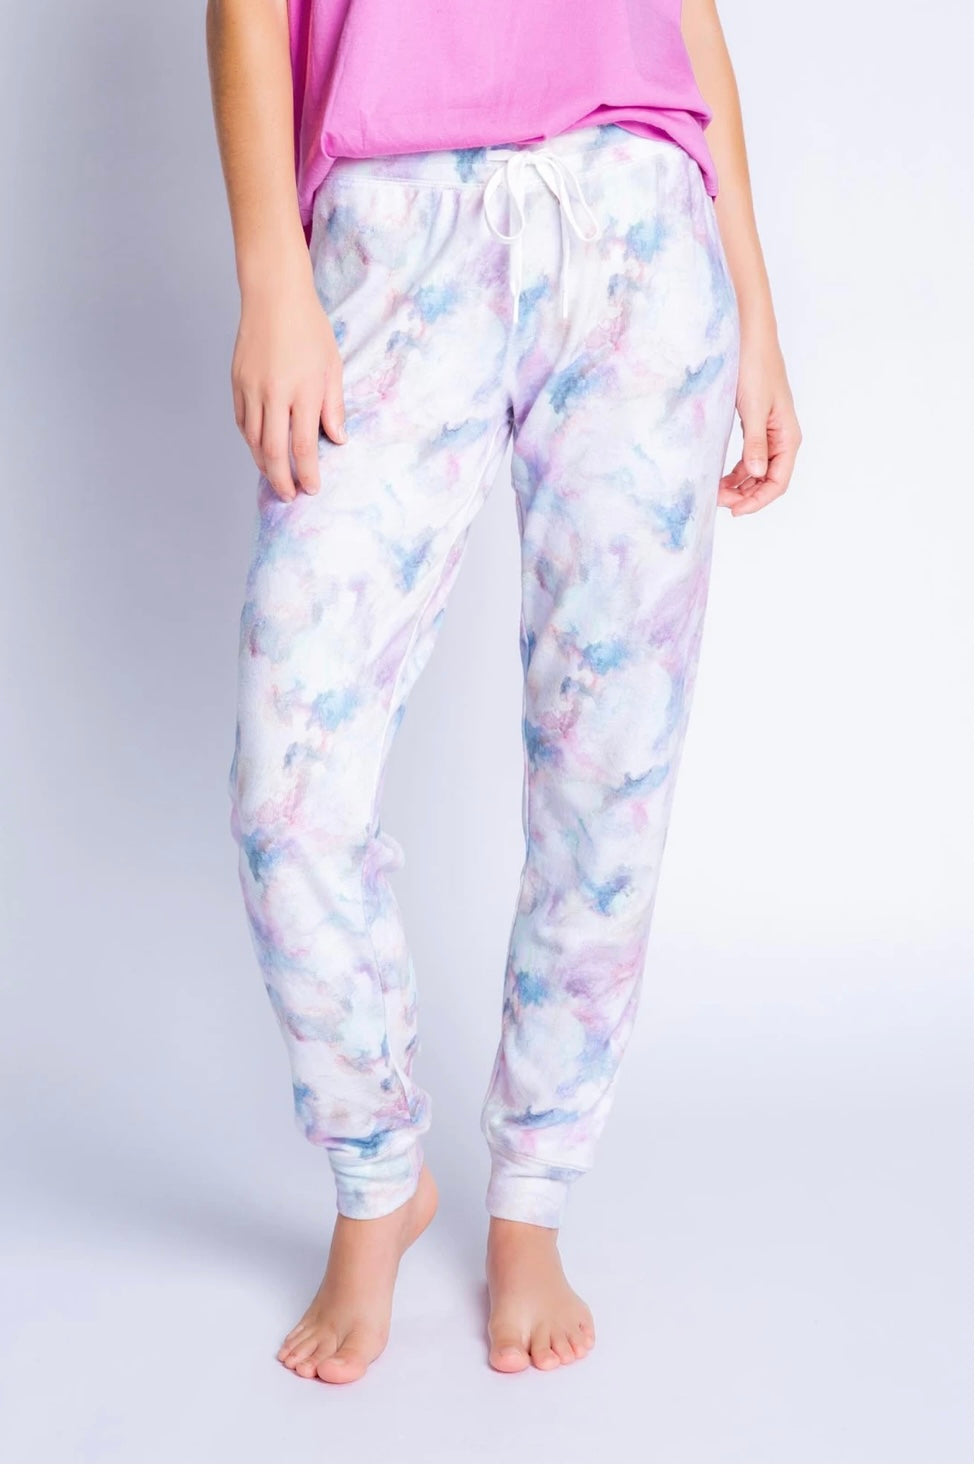 PJ Salvage Marble Vibes Banded Pant Regular price